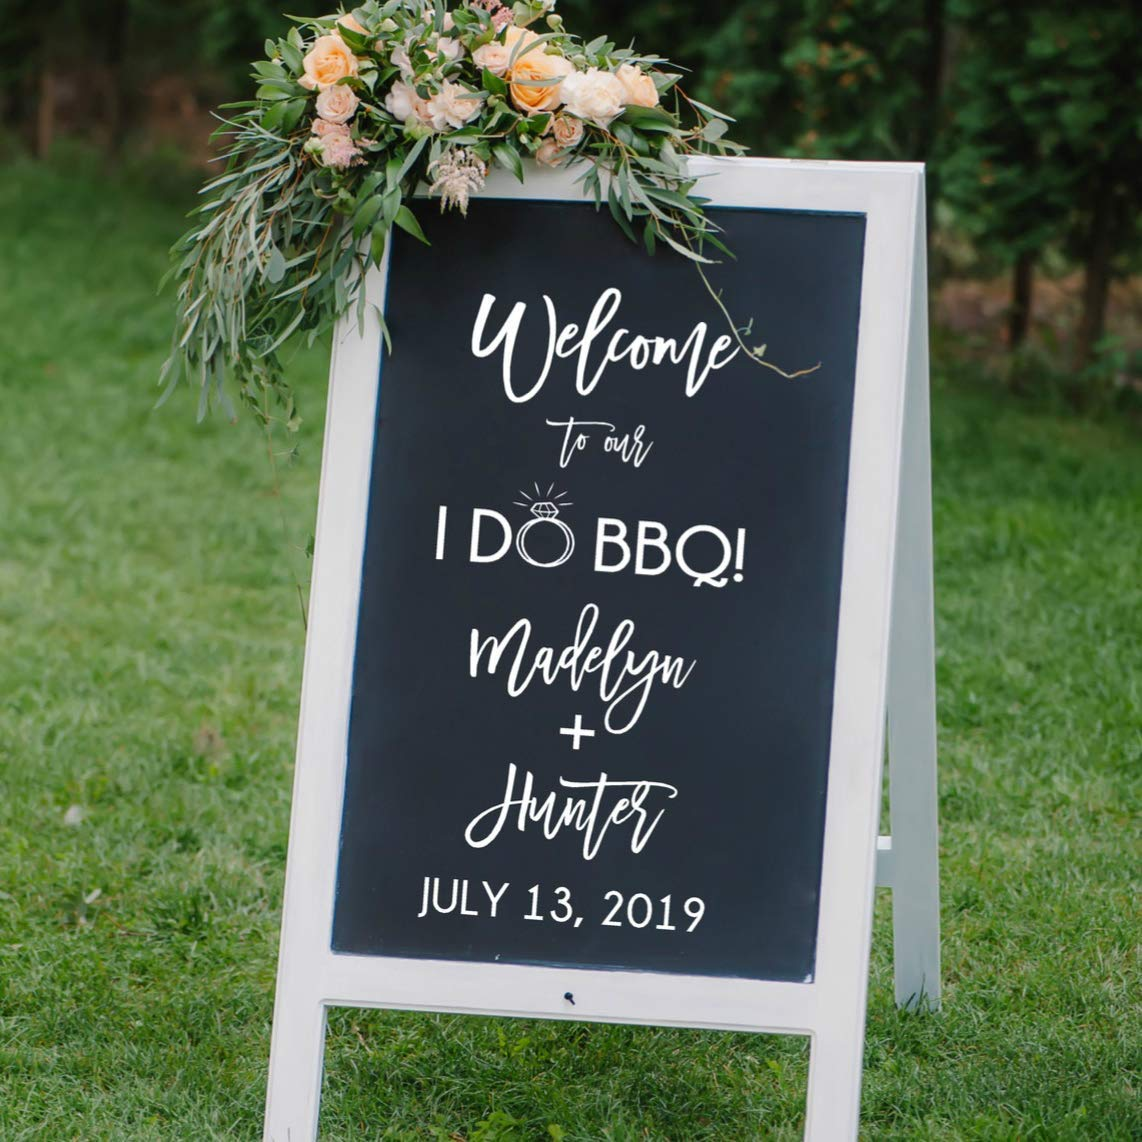 I Do Bbq Reception Welcome Decal Bbq Wedding Decorations Backyard Wedding Decor Several Sizes Colors